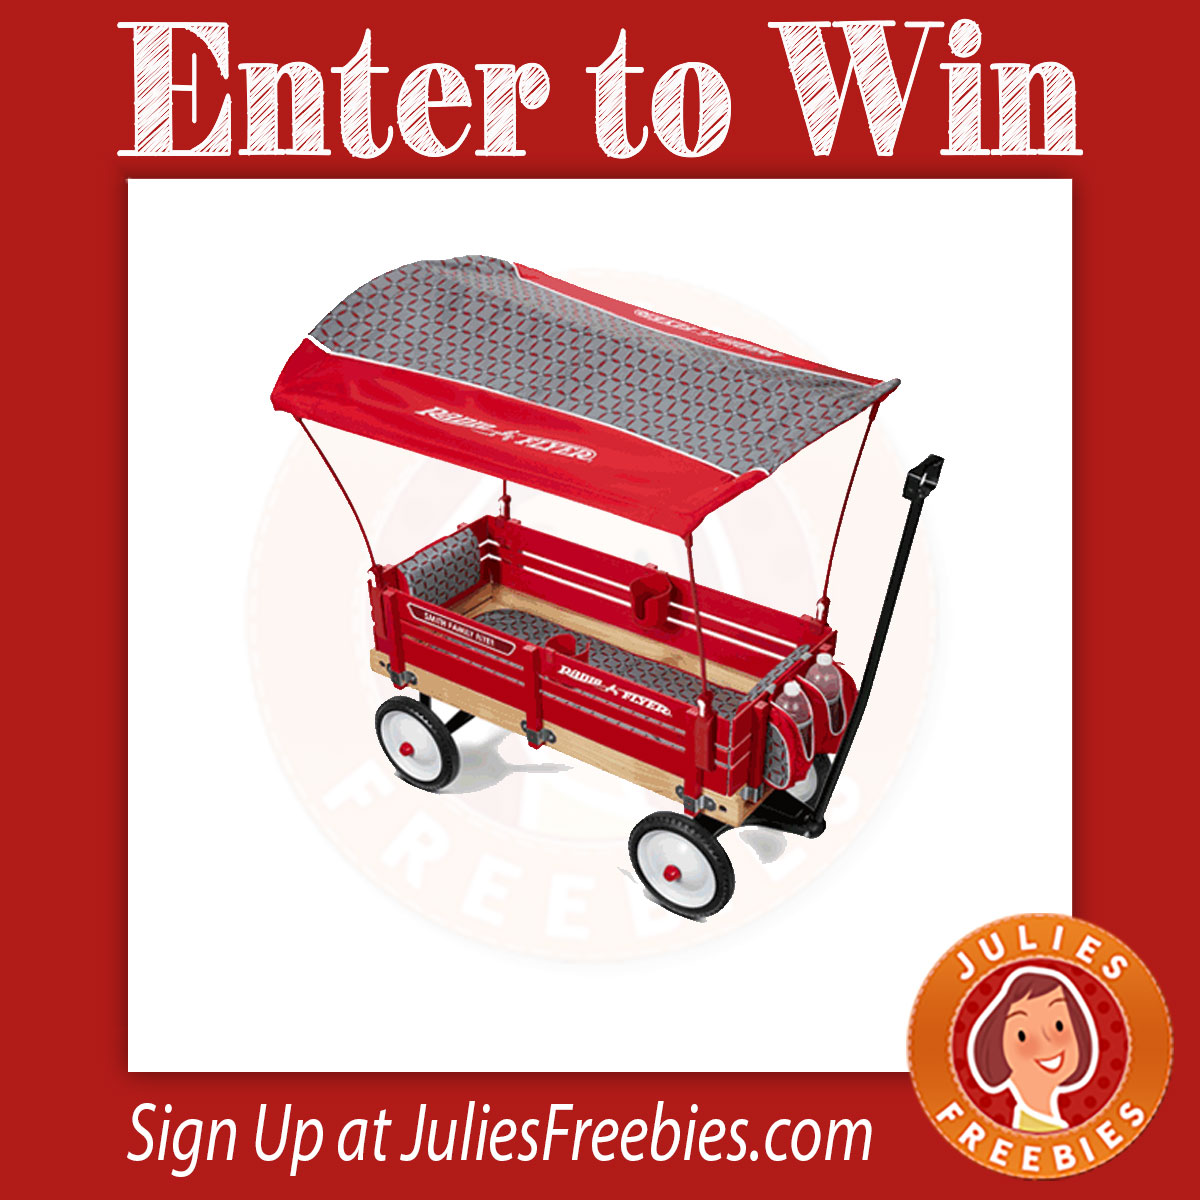 Red Wagons gimesbasu.gq Radio Flyer is the premier retailer of the full line of Radio Flyer wagons, trikes, toddler toys and wagon accessories Check out our sales coupons. Red Wagons Coupons.